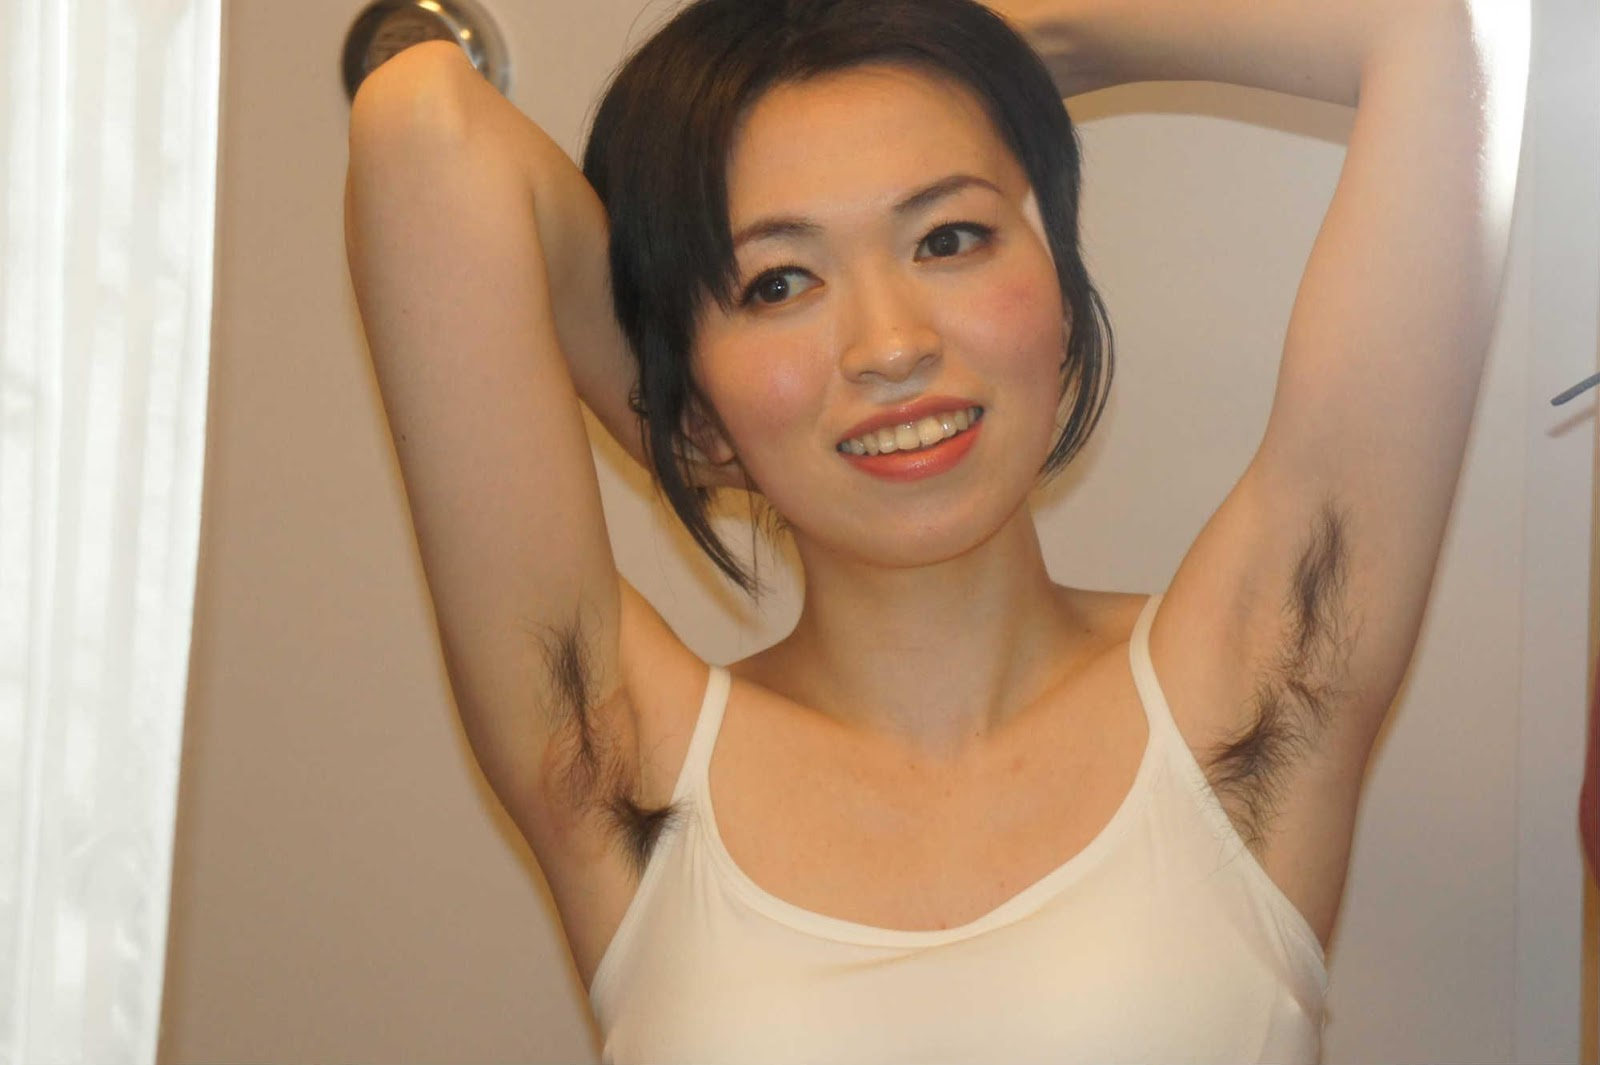 How girls shaved arm pits happened